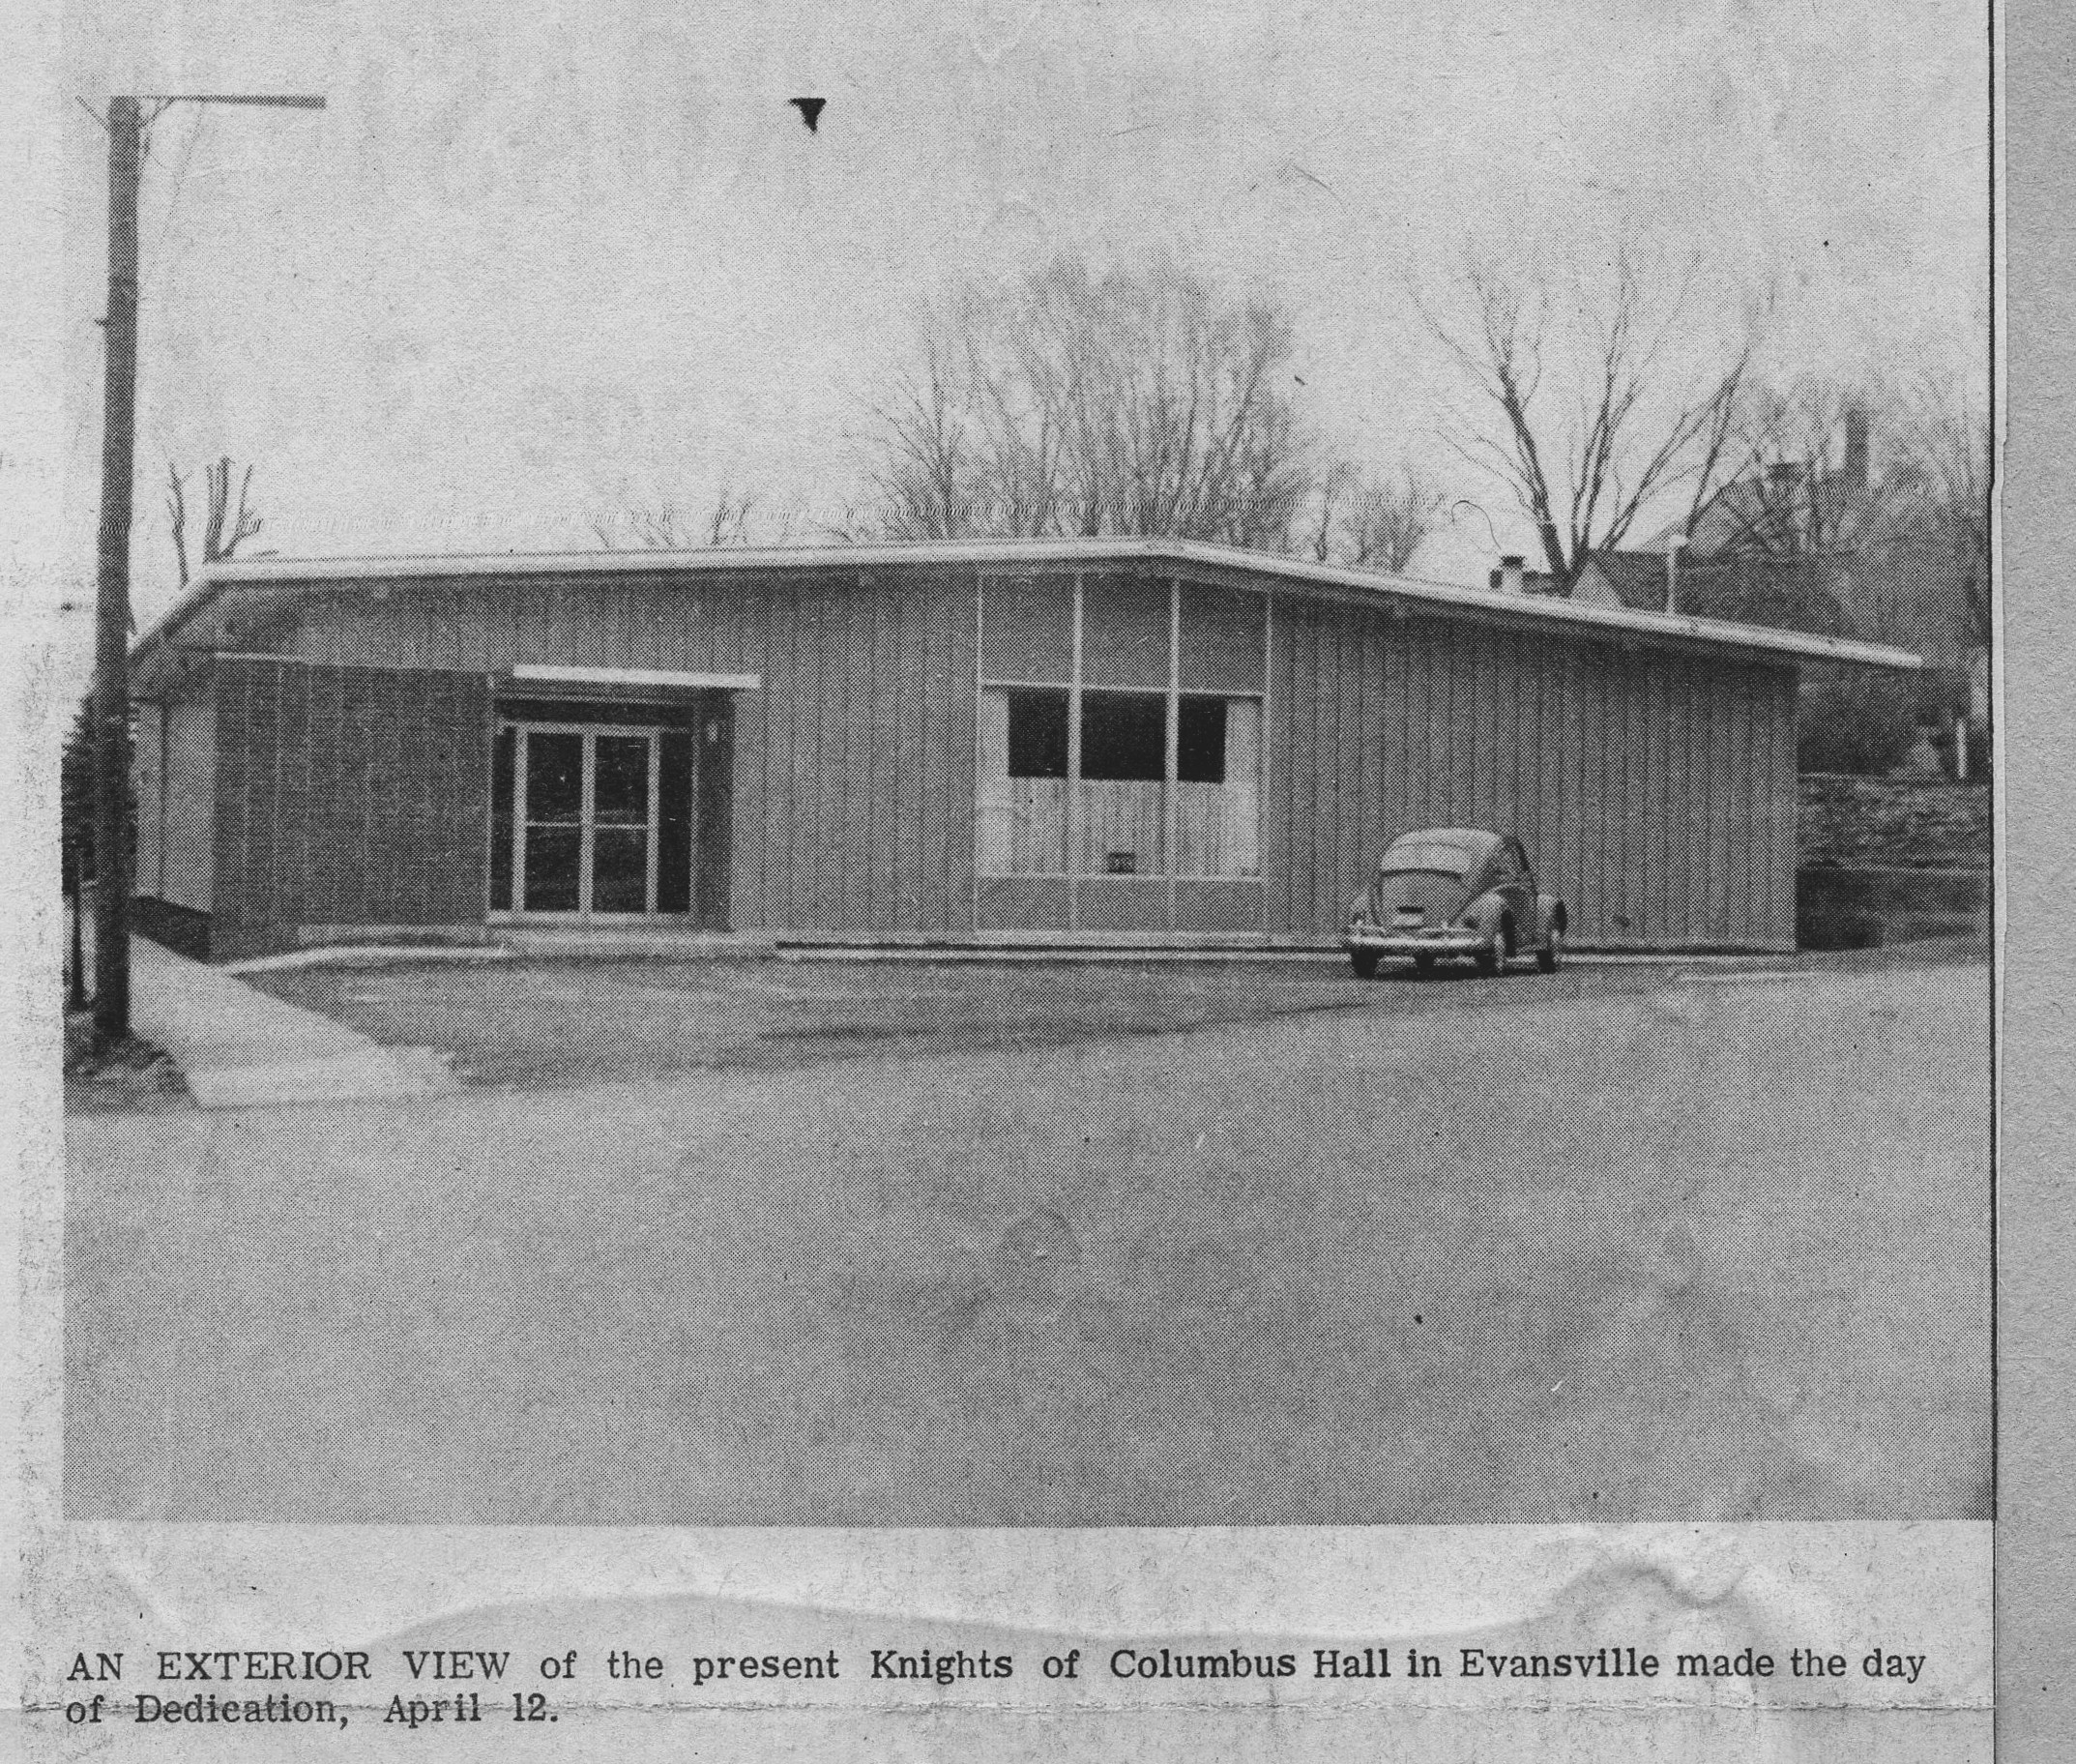 The finished Building circa 1964